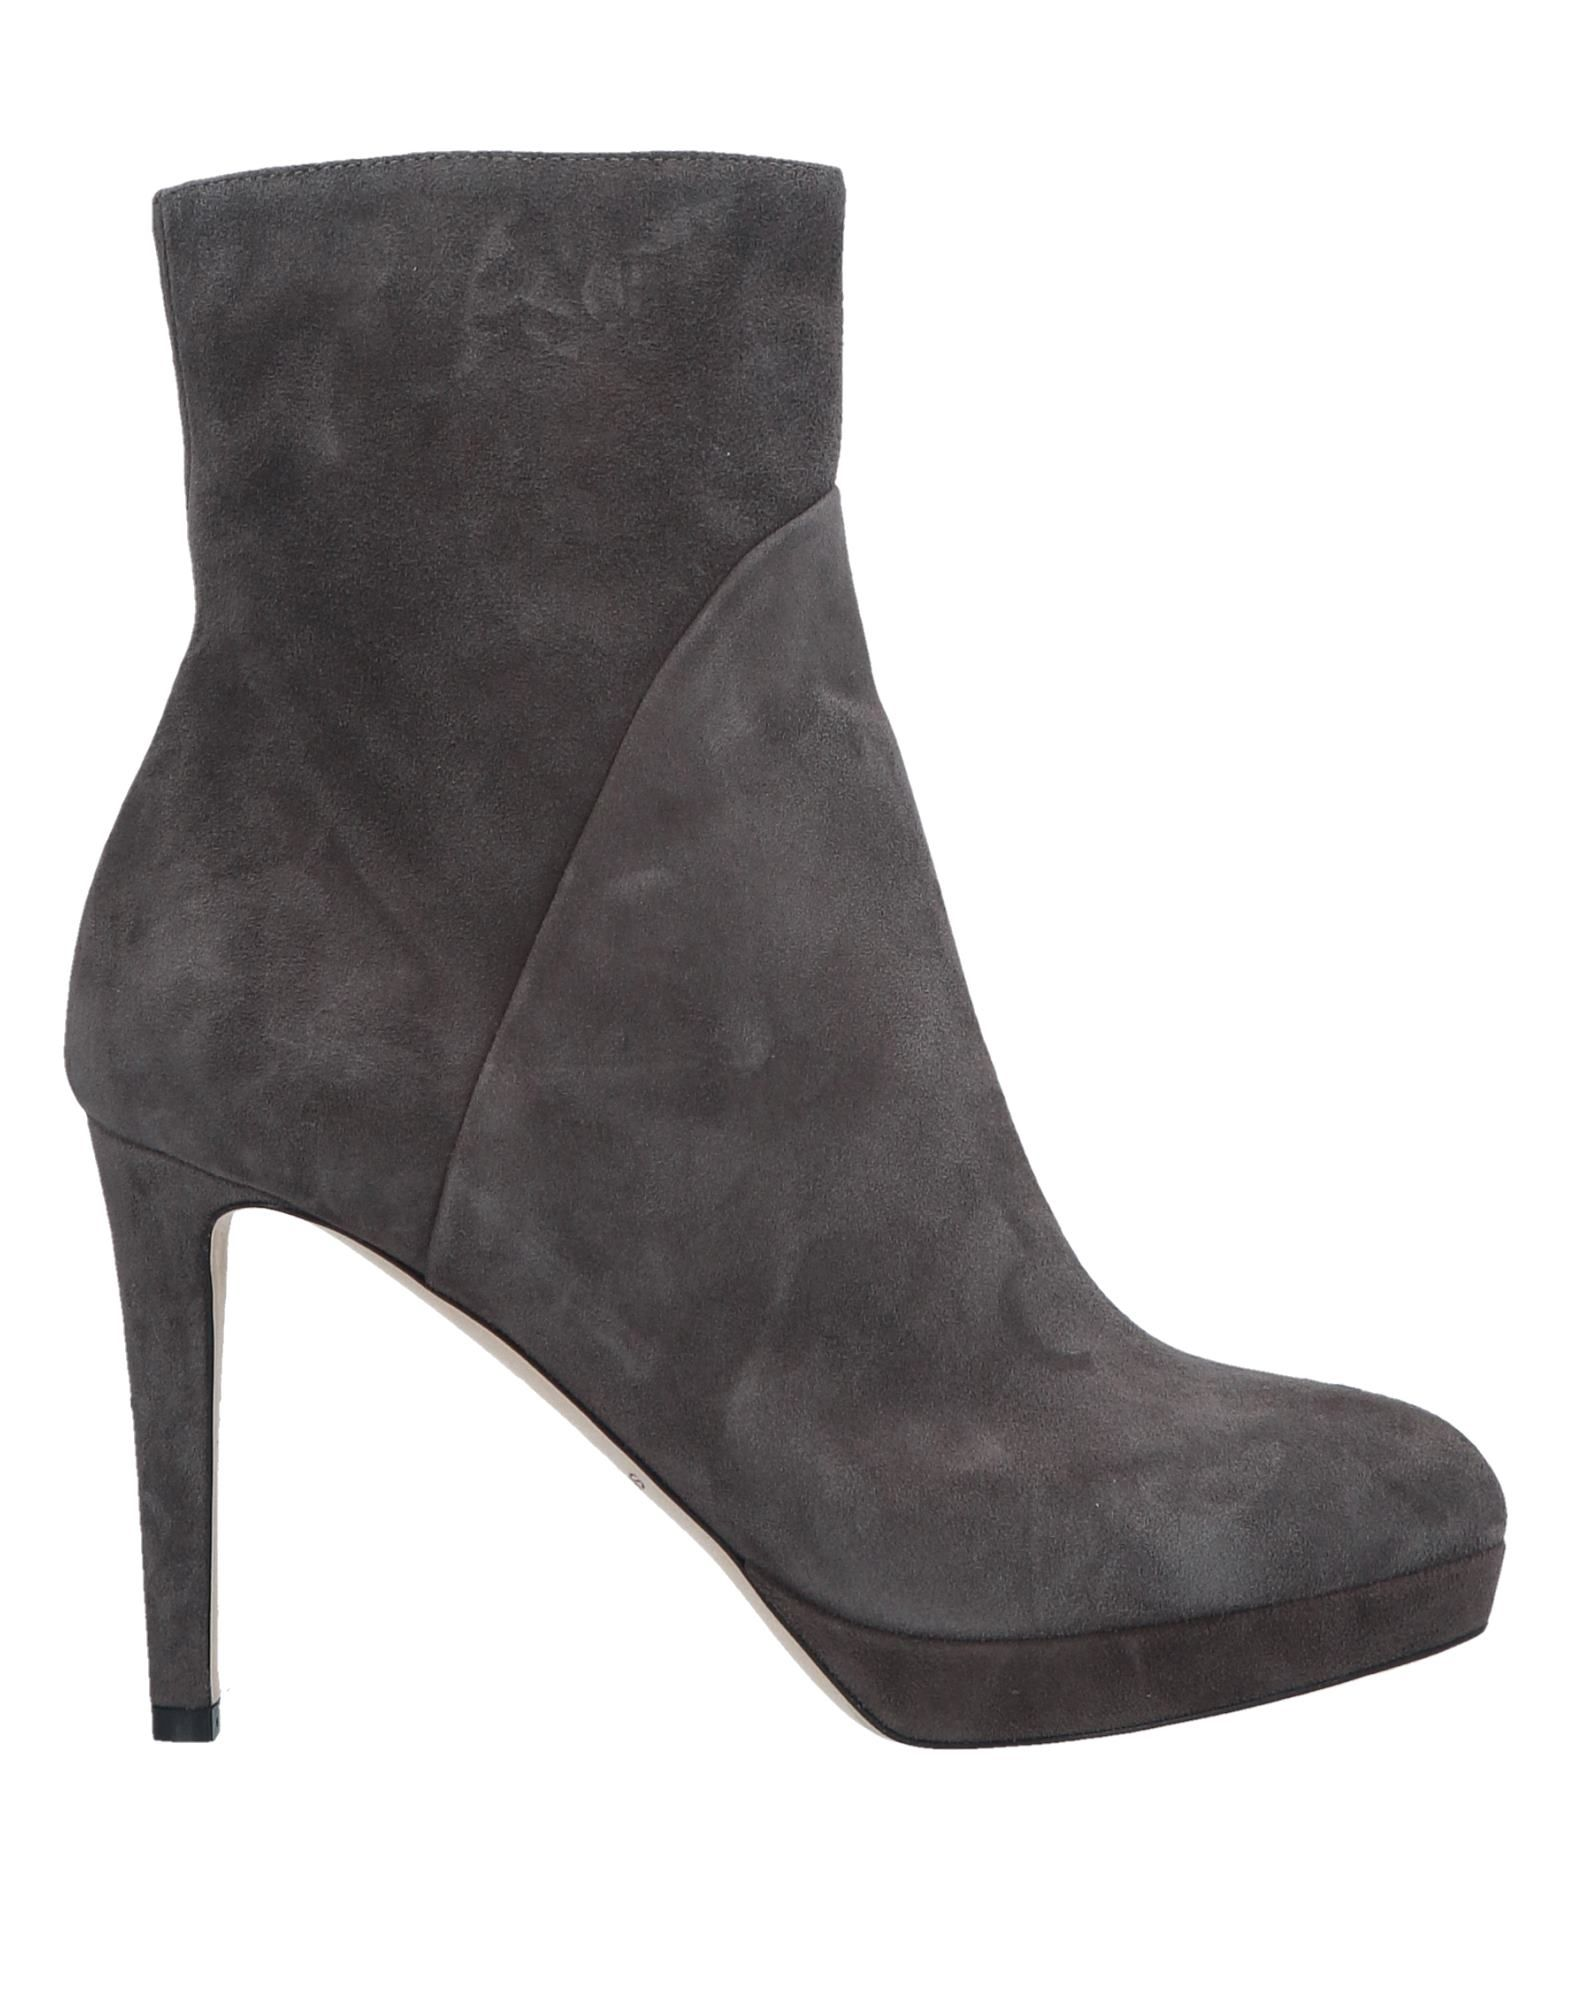 819df68896d Sergio Rossi Women s Ankle Boots - Spring-Summer and Fall-Winter  Collections